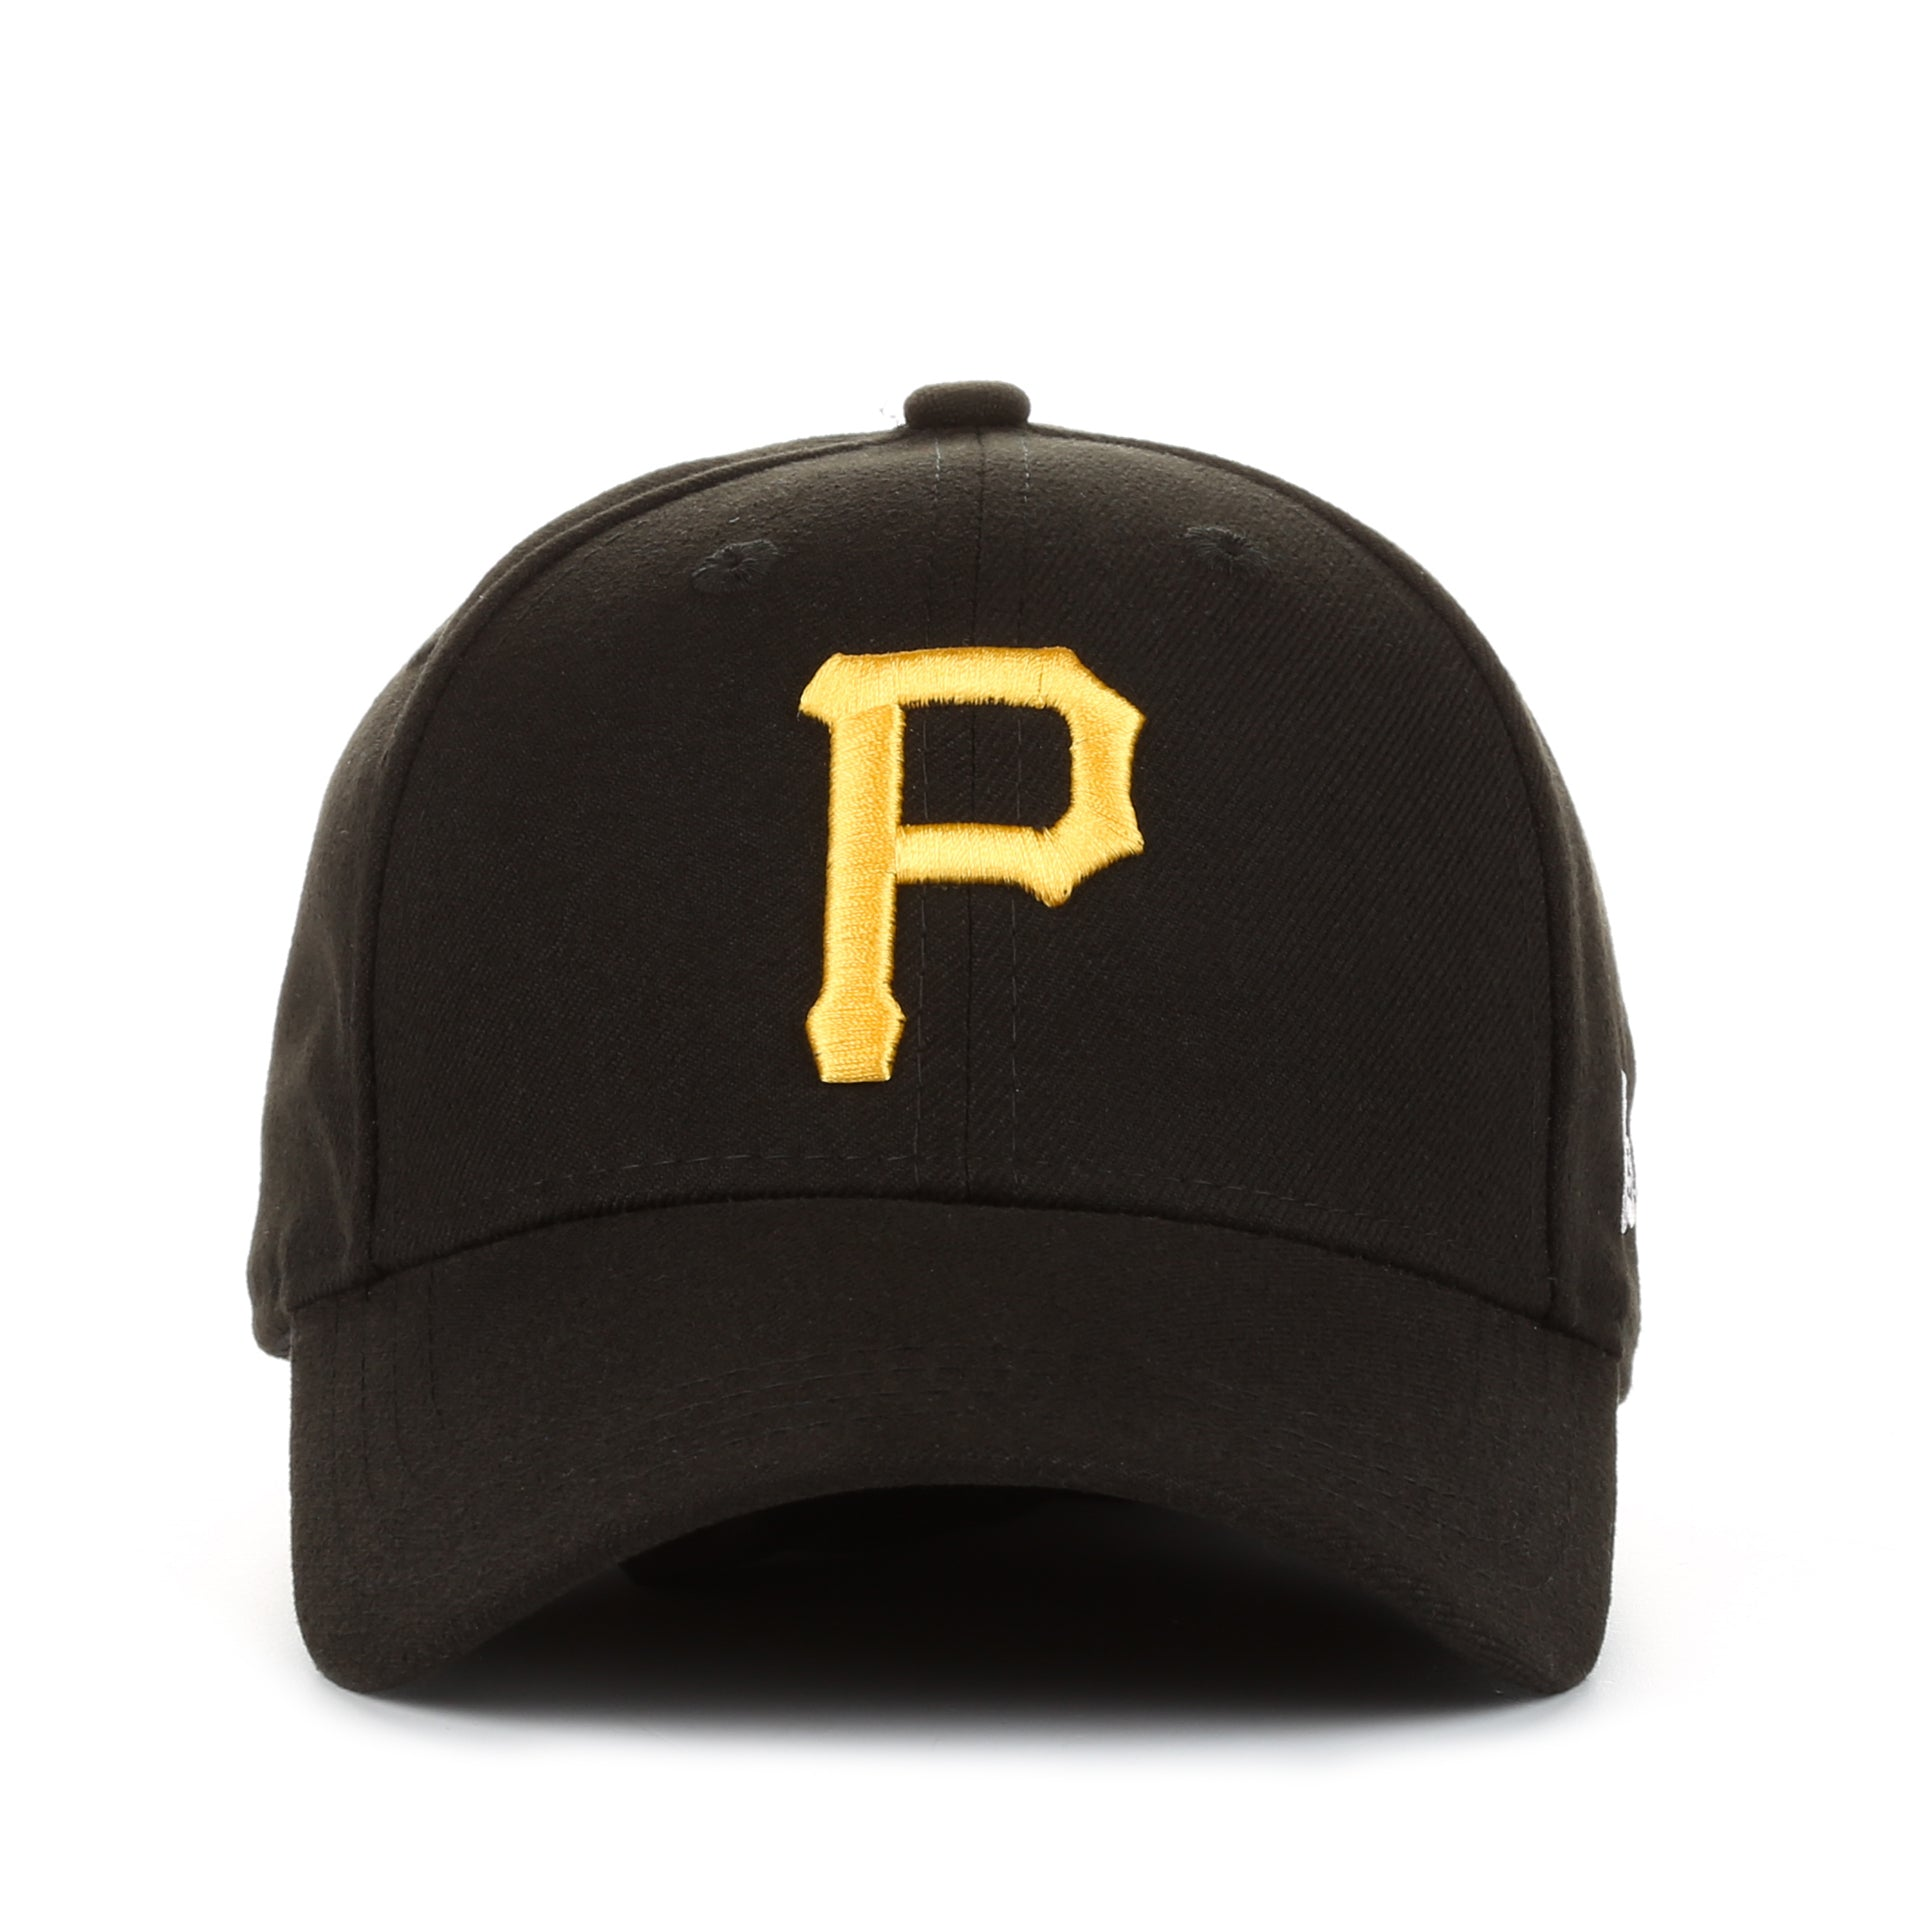 New Era 39Thirty Team Classic Stretch Fit Cap - Pittsburgh Pirates ... 0291a6355b92